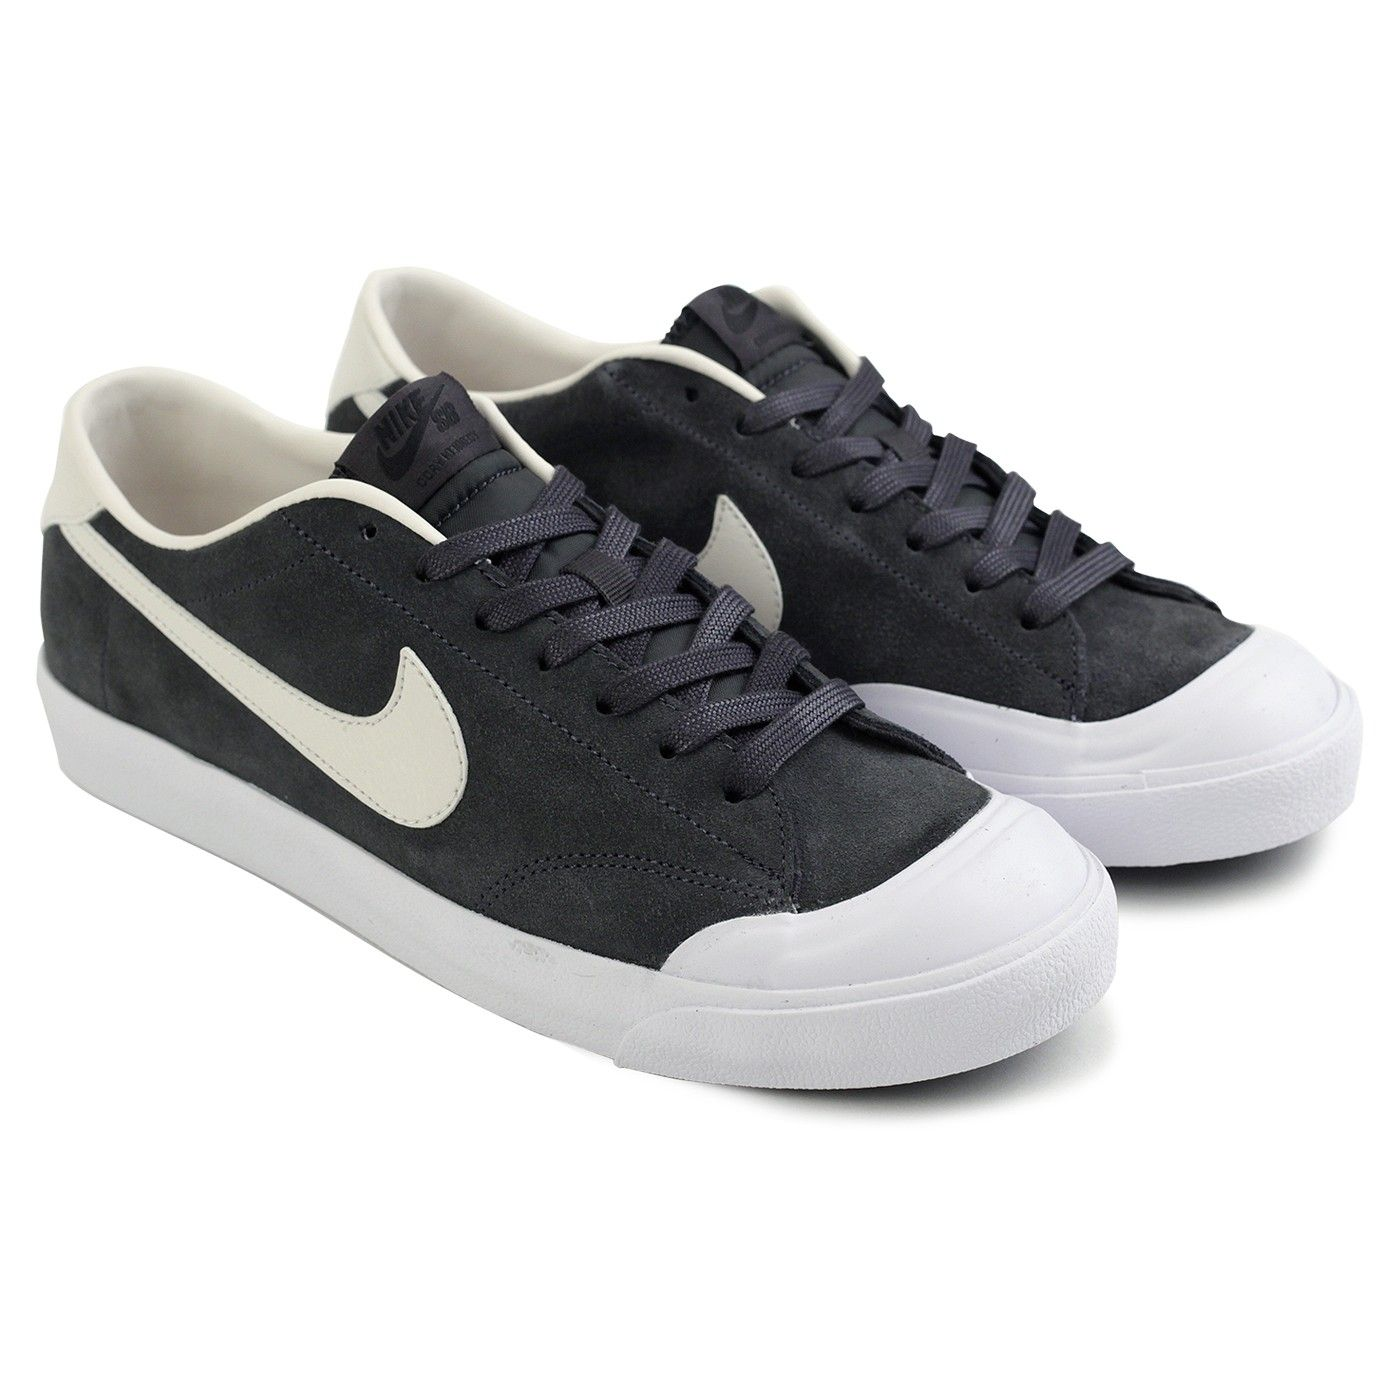 09f9c5697951d Cory Kennedy Shoes in Anthracite / Phantom-White-Black by Nike SB ...